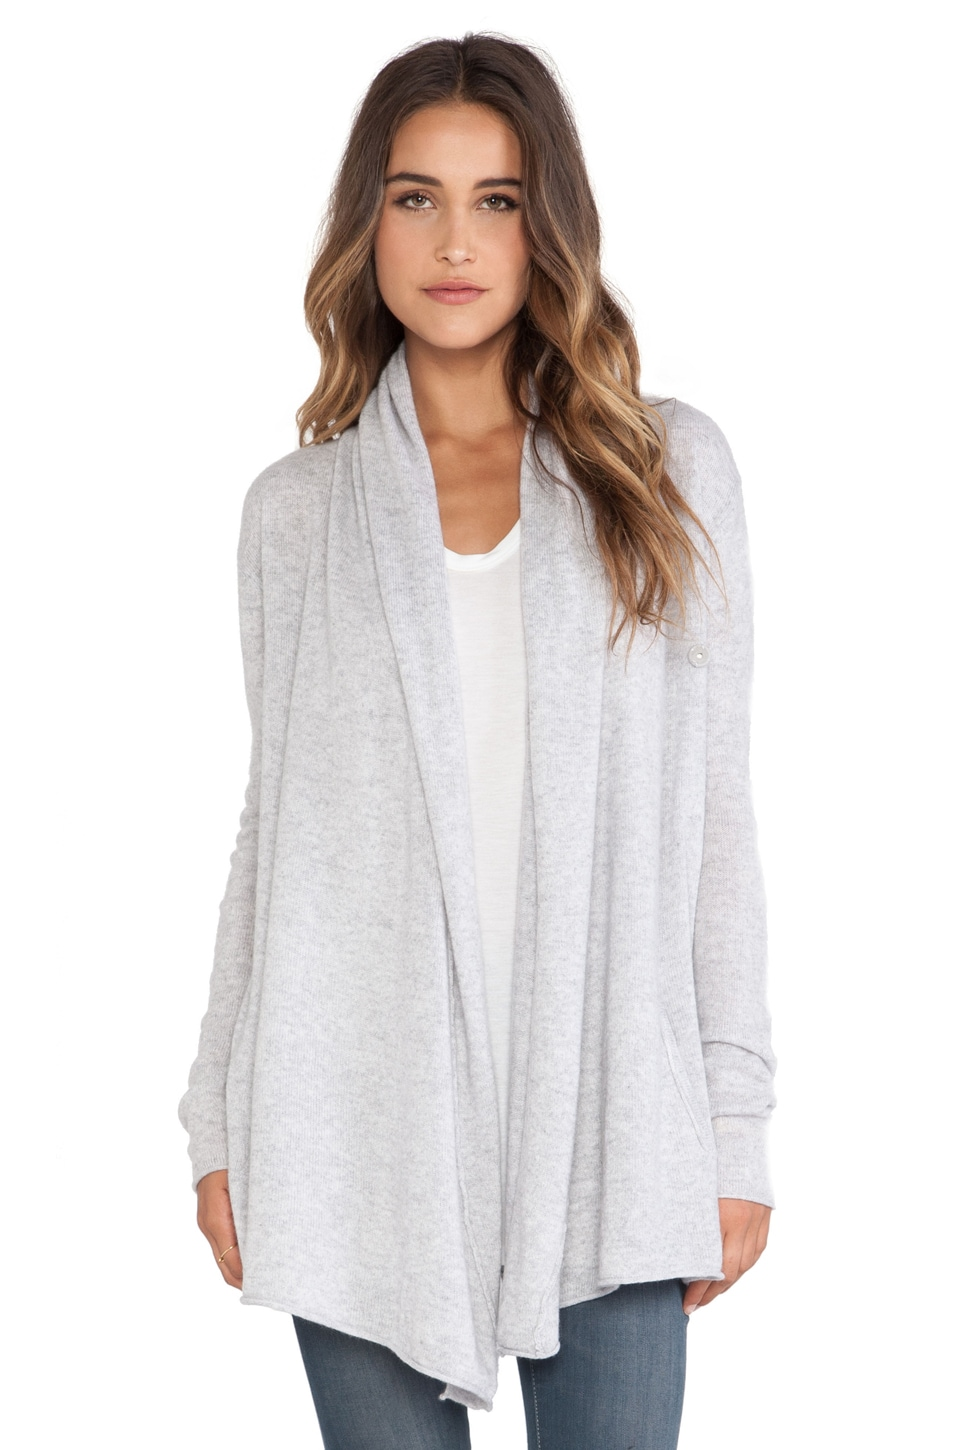 Central Park West LuxeCashmere Drape Cardigan in Heather Grey